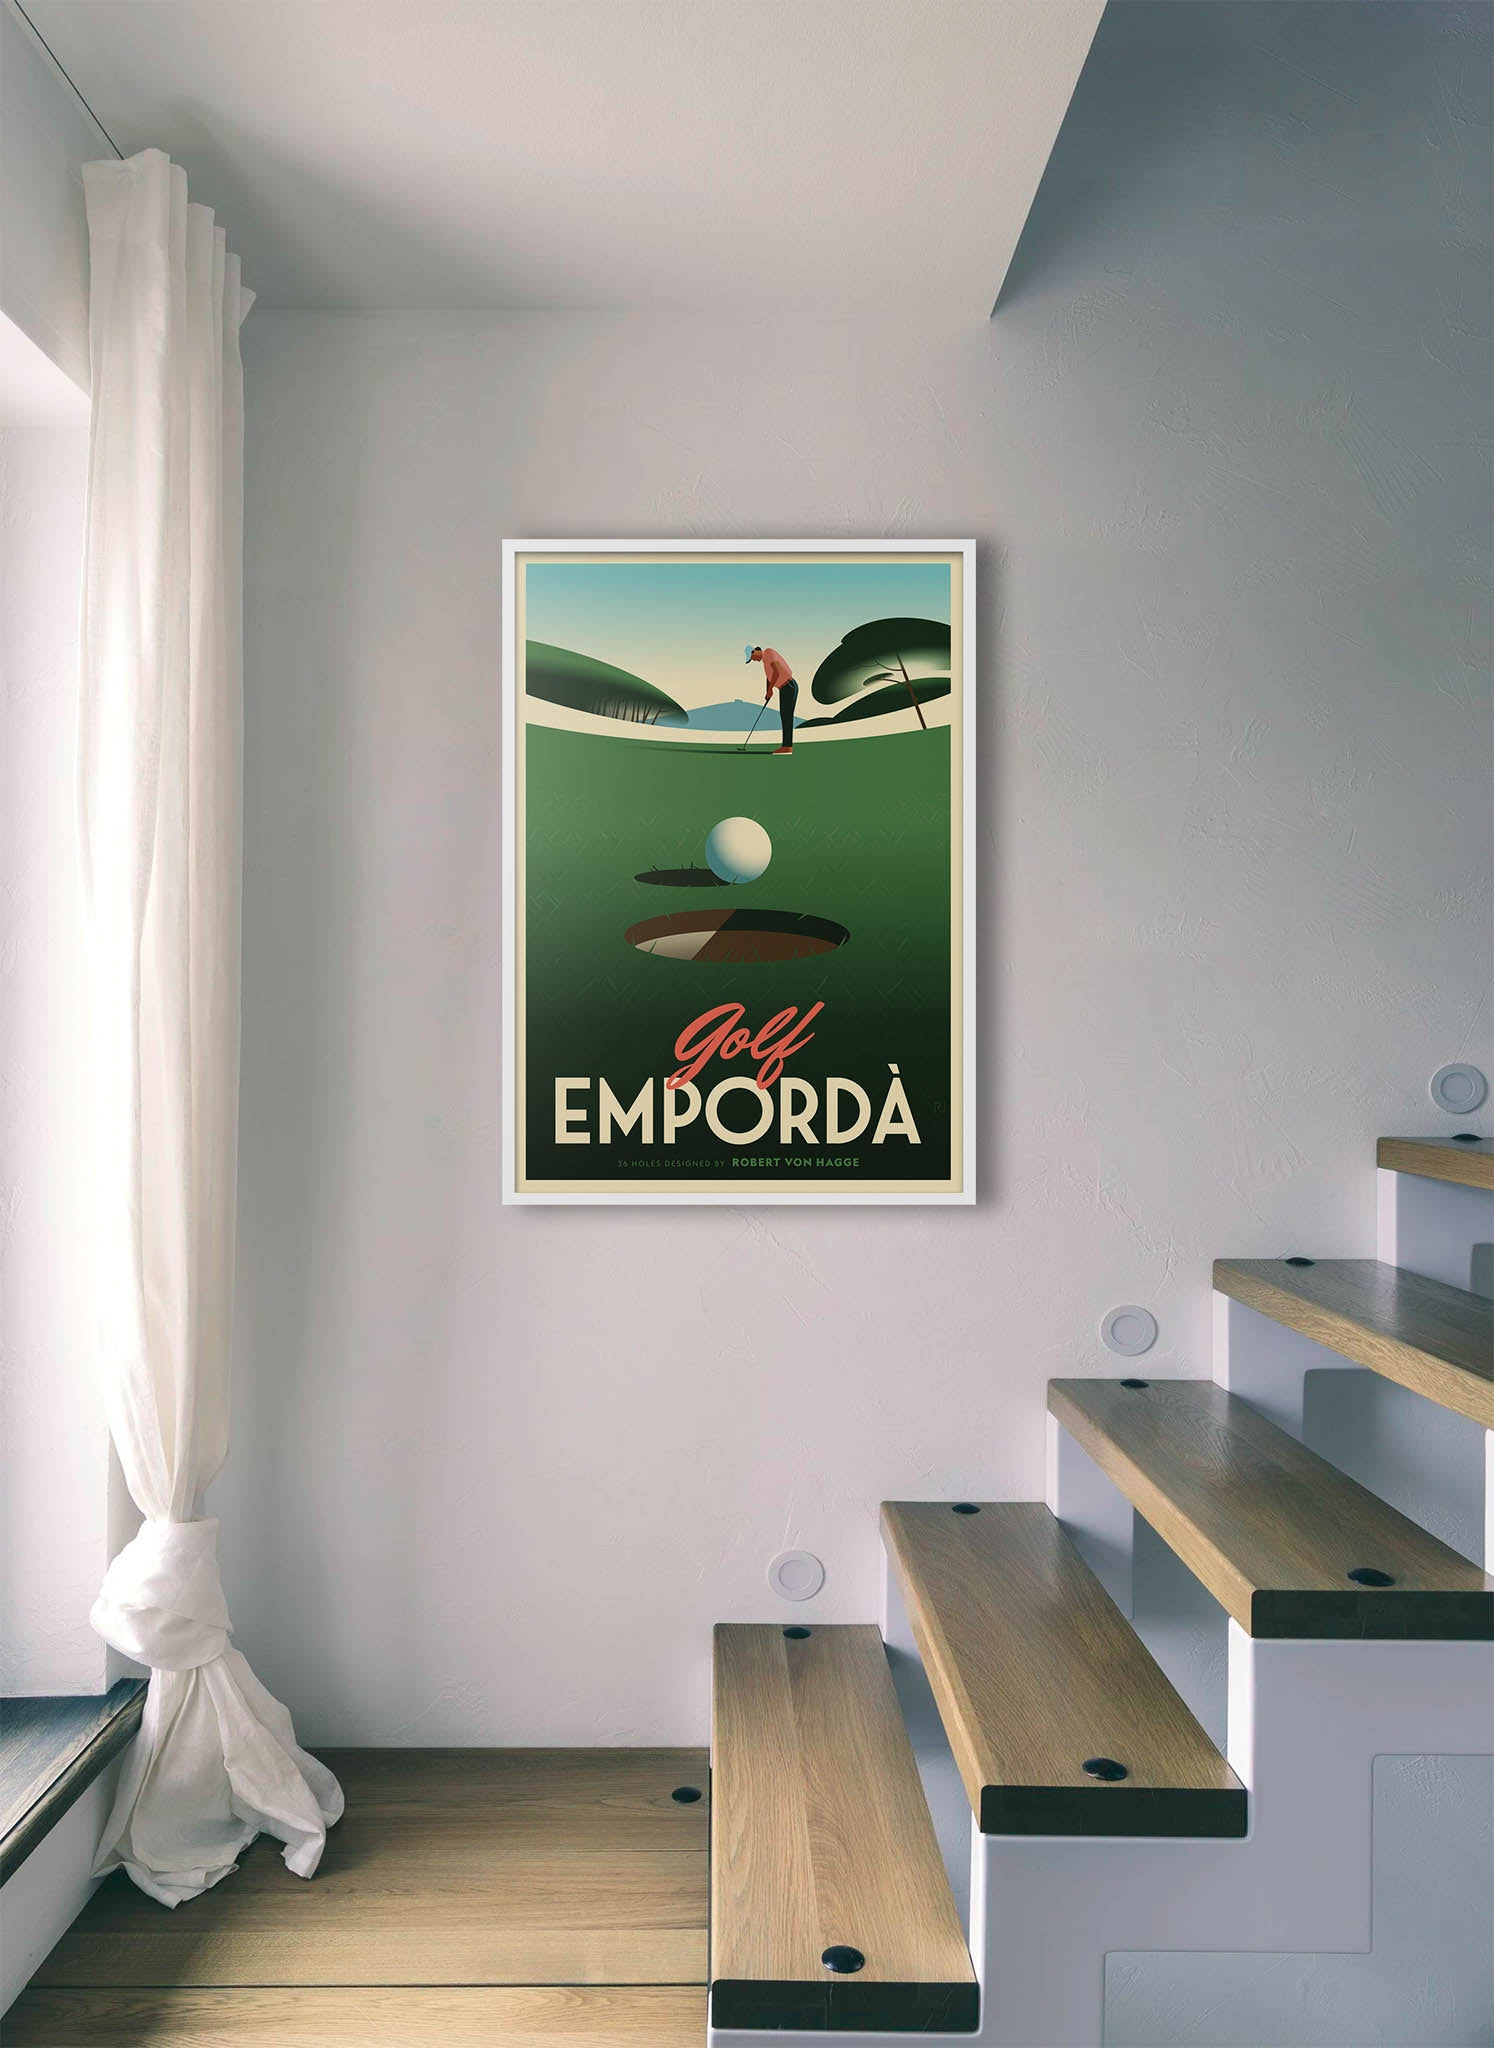 A golf ball in a hole after putting by Ricard Jorge.  Print without margin framed in white wood